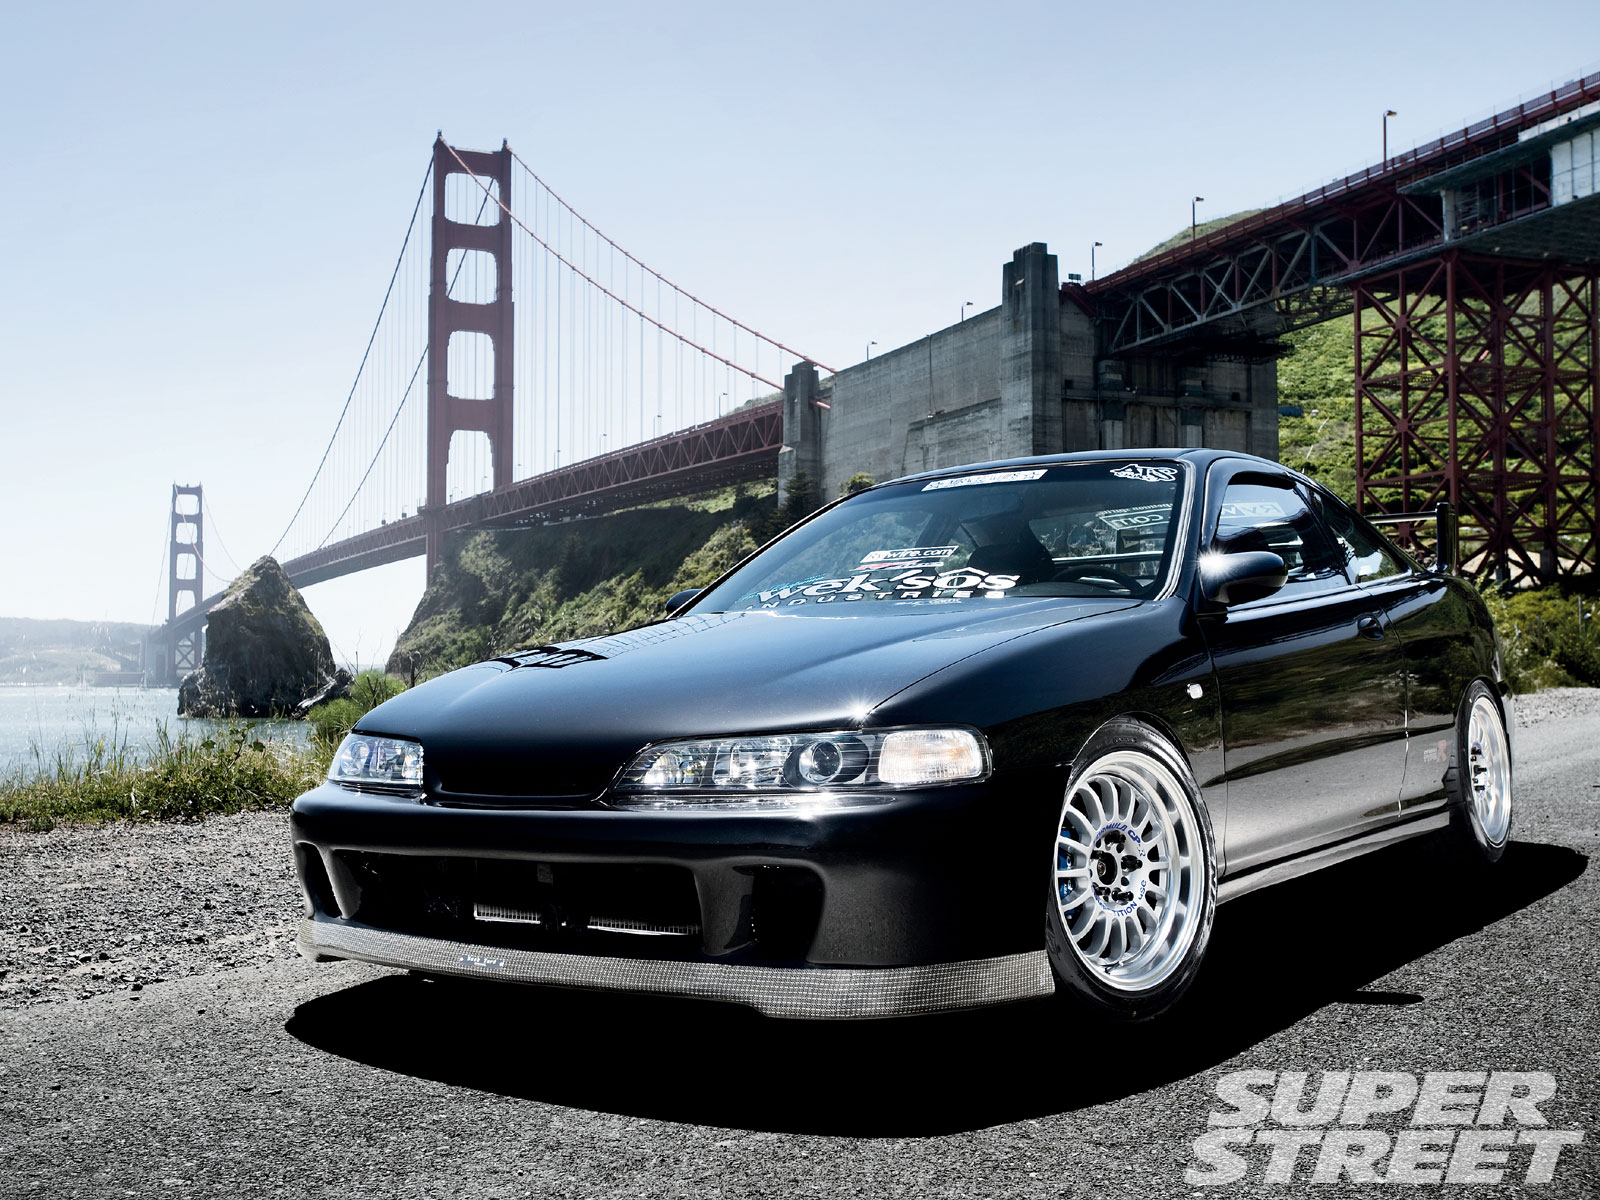 Sstp 1007 16 o 2000 acura integra type r front shot